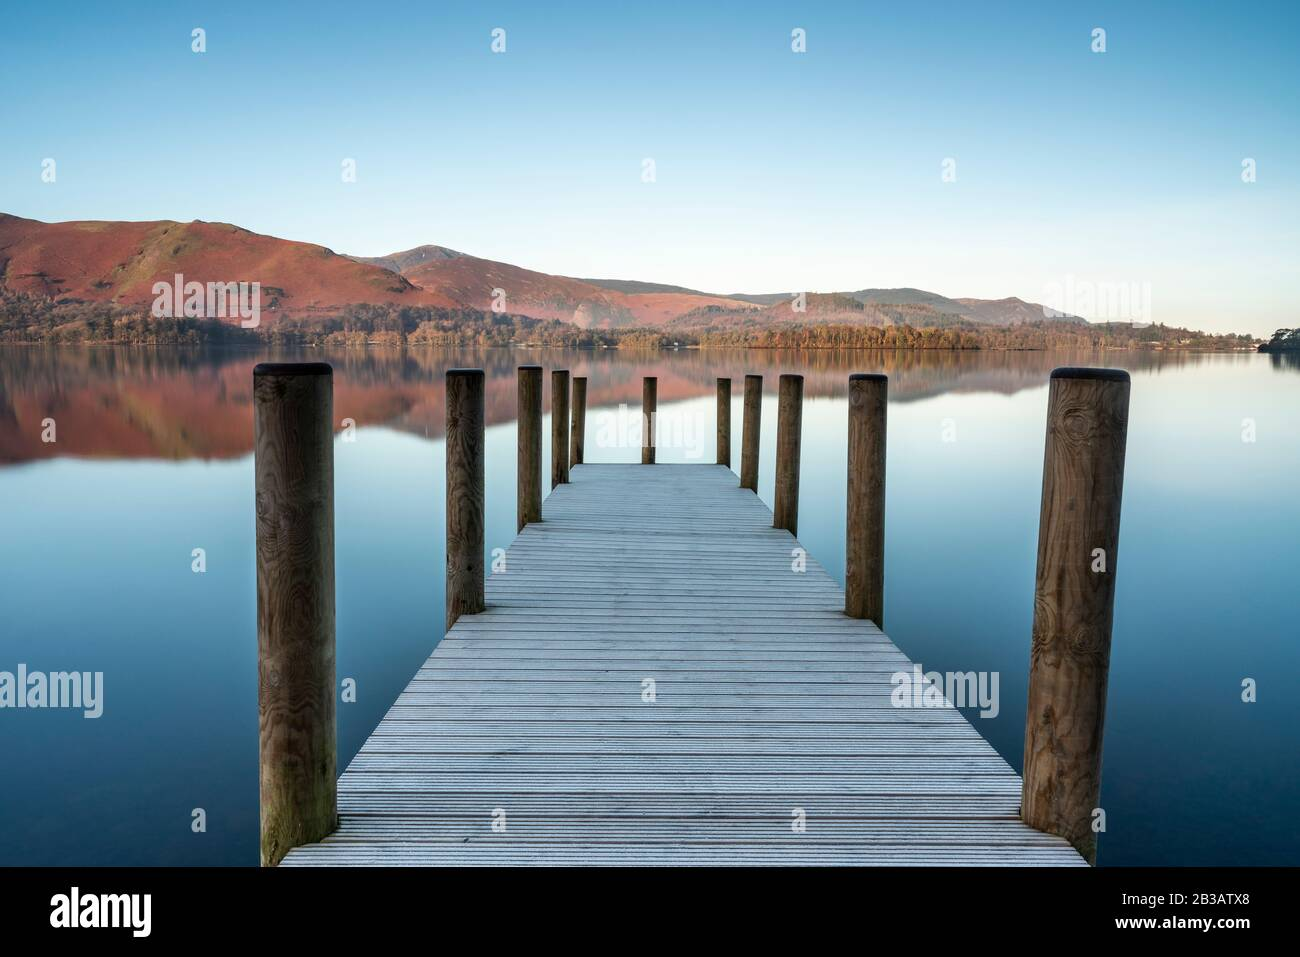 Reflections of Ashness Gate or Barrow Bay new jetty in Derwentwater, Lake District National Park, Cumbria, England, UK Stock Photo